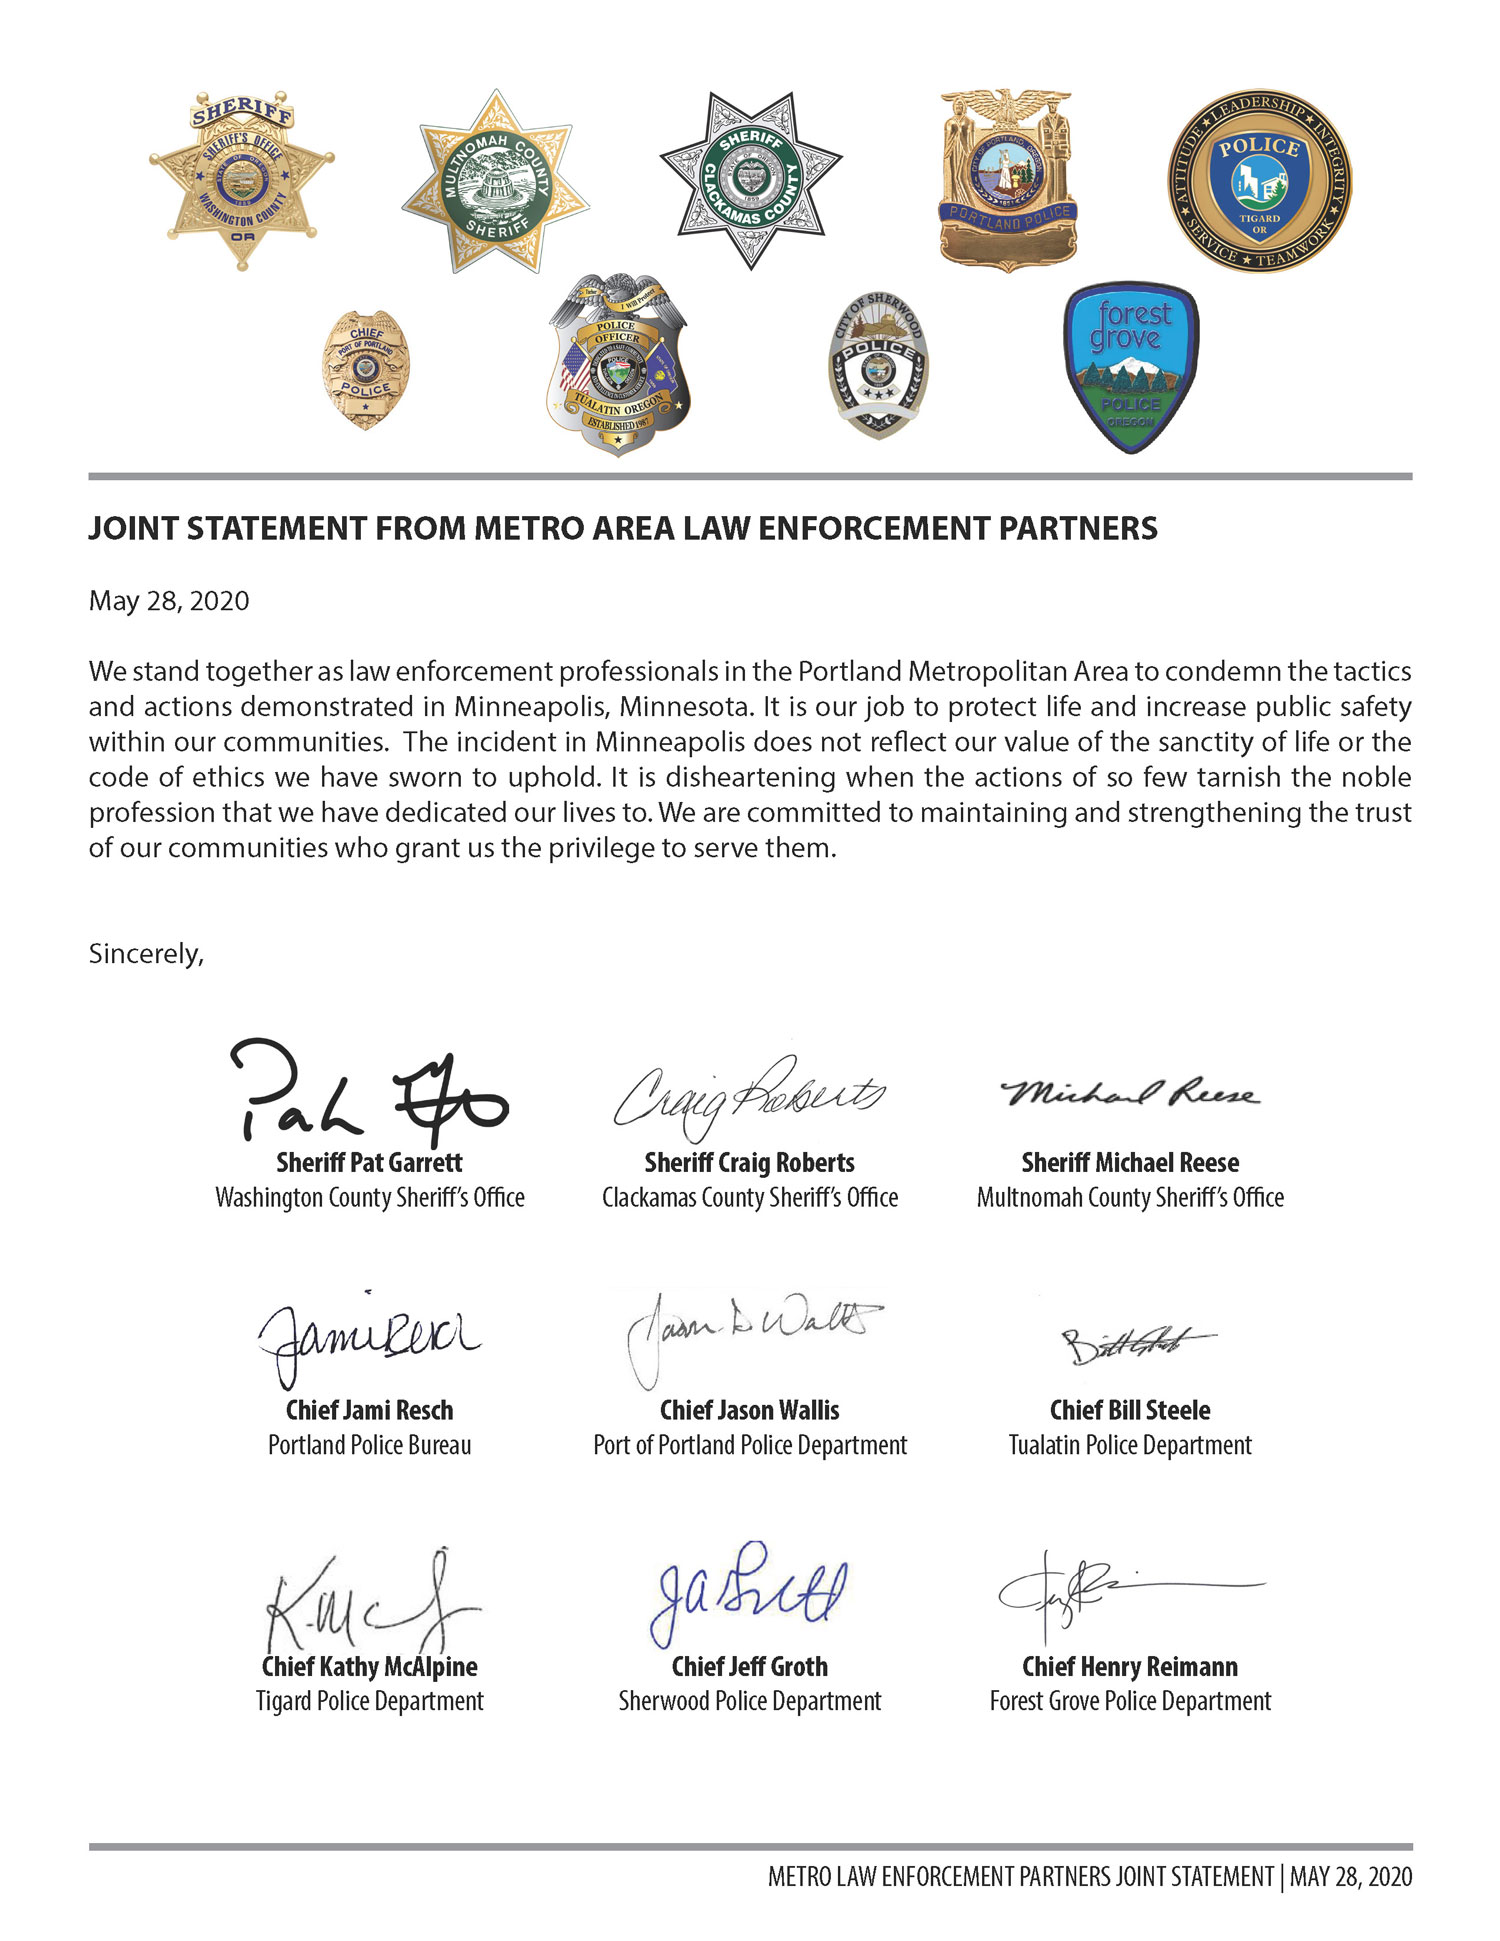 Joint Statement from Metro Area Law Enforcement Partners